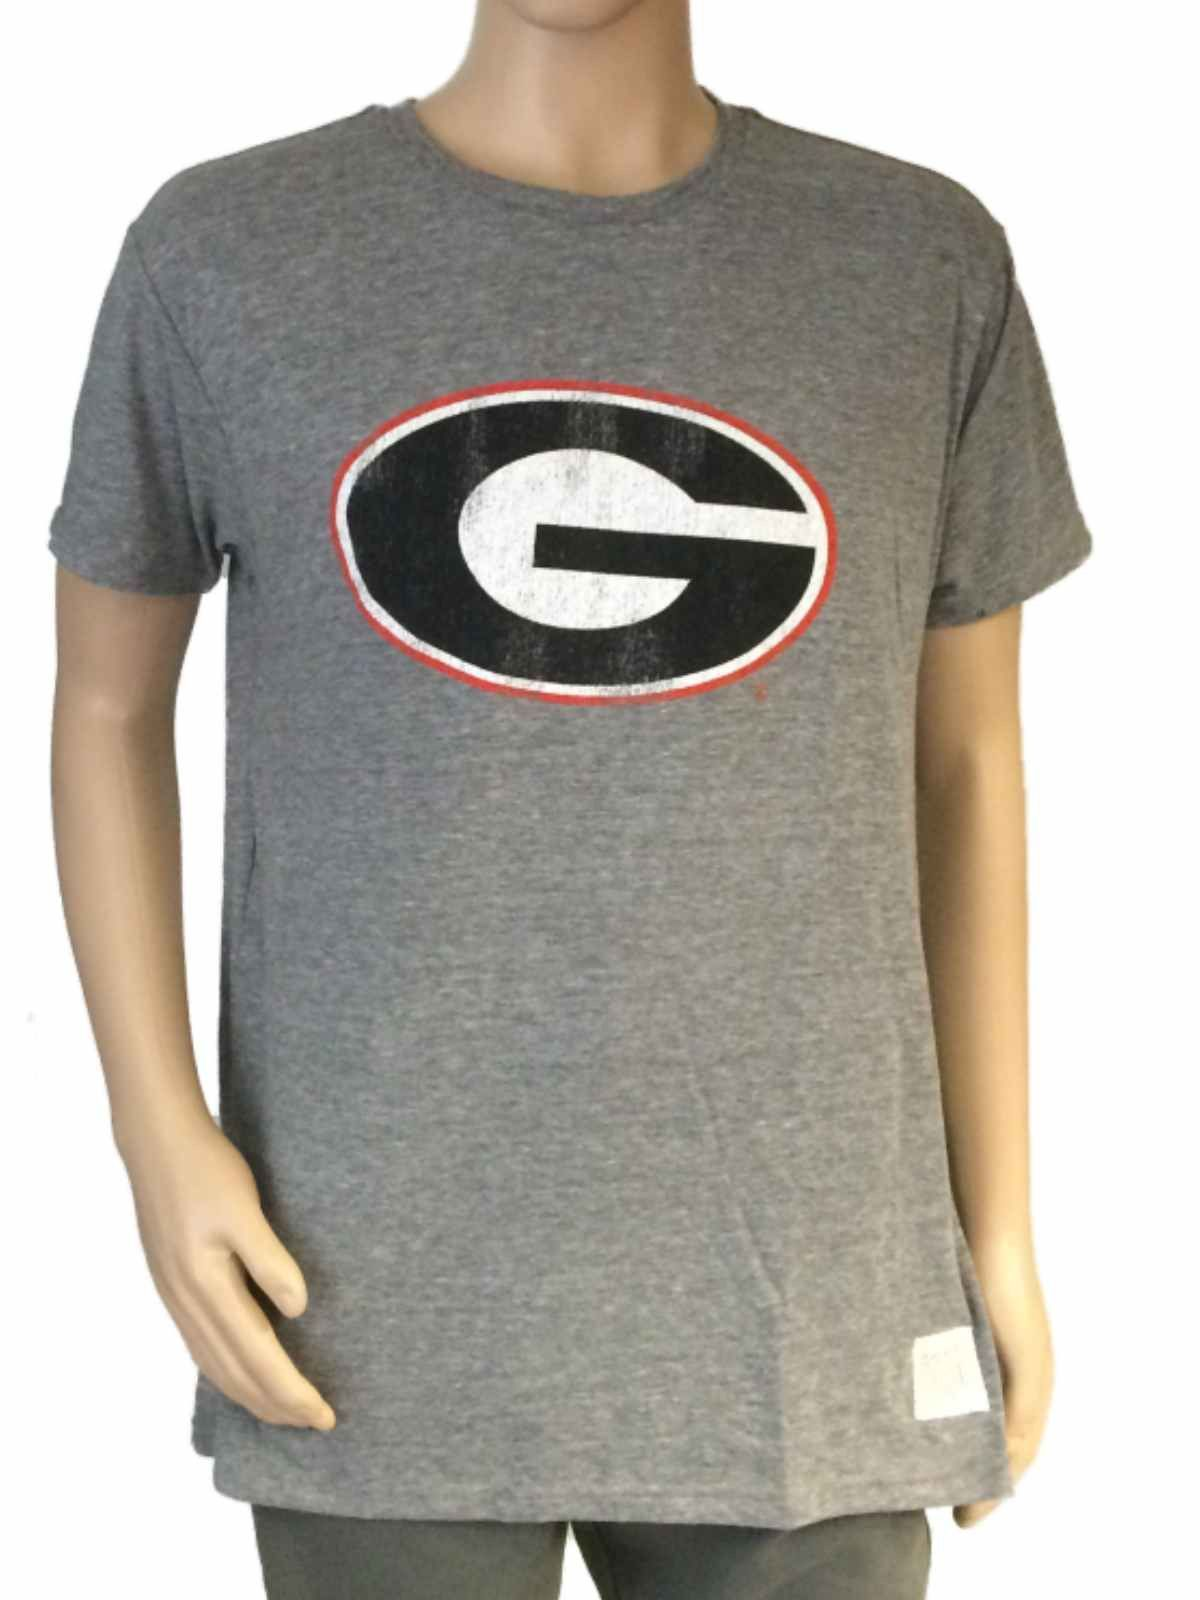 Georgia Bulldogs Retro Brand Gray Soft Tri-Blend Short Sleeve T-Shirt